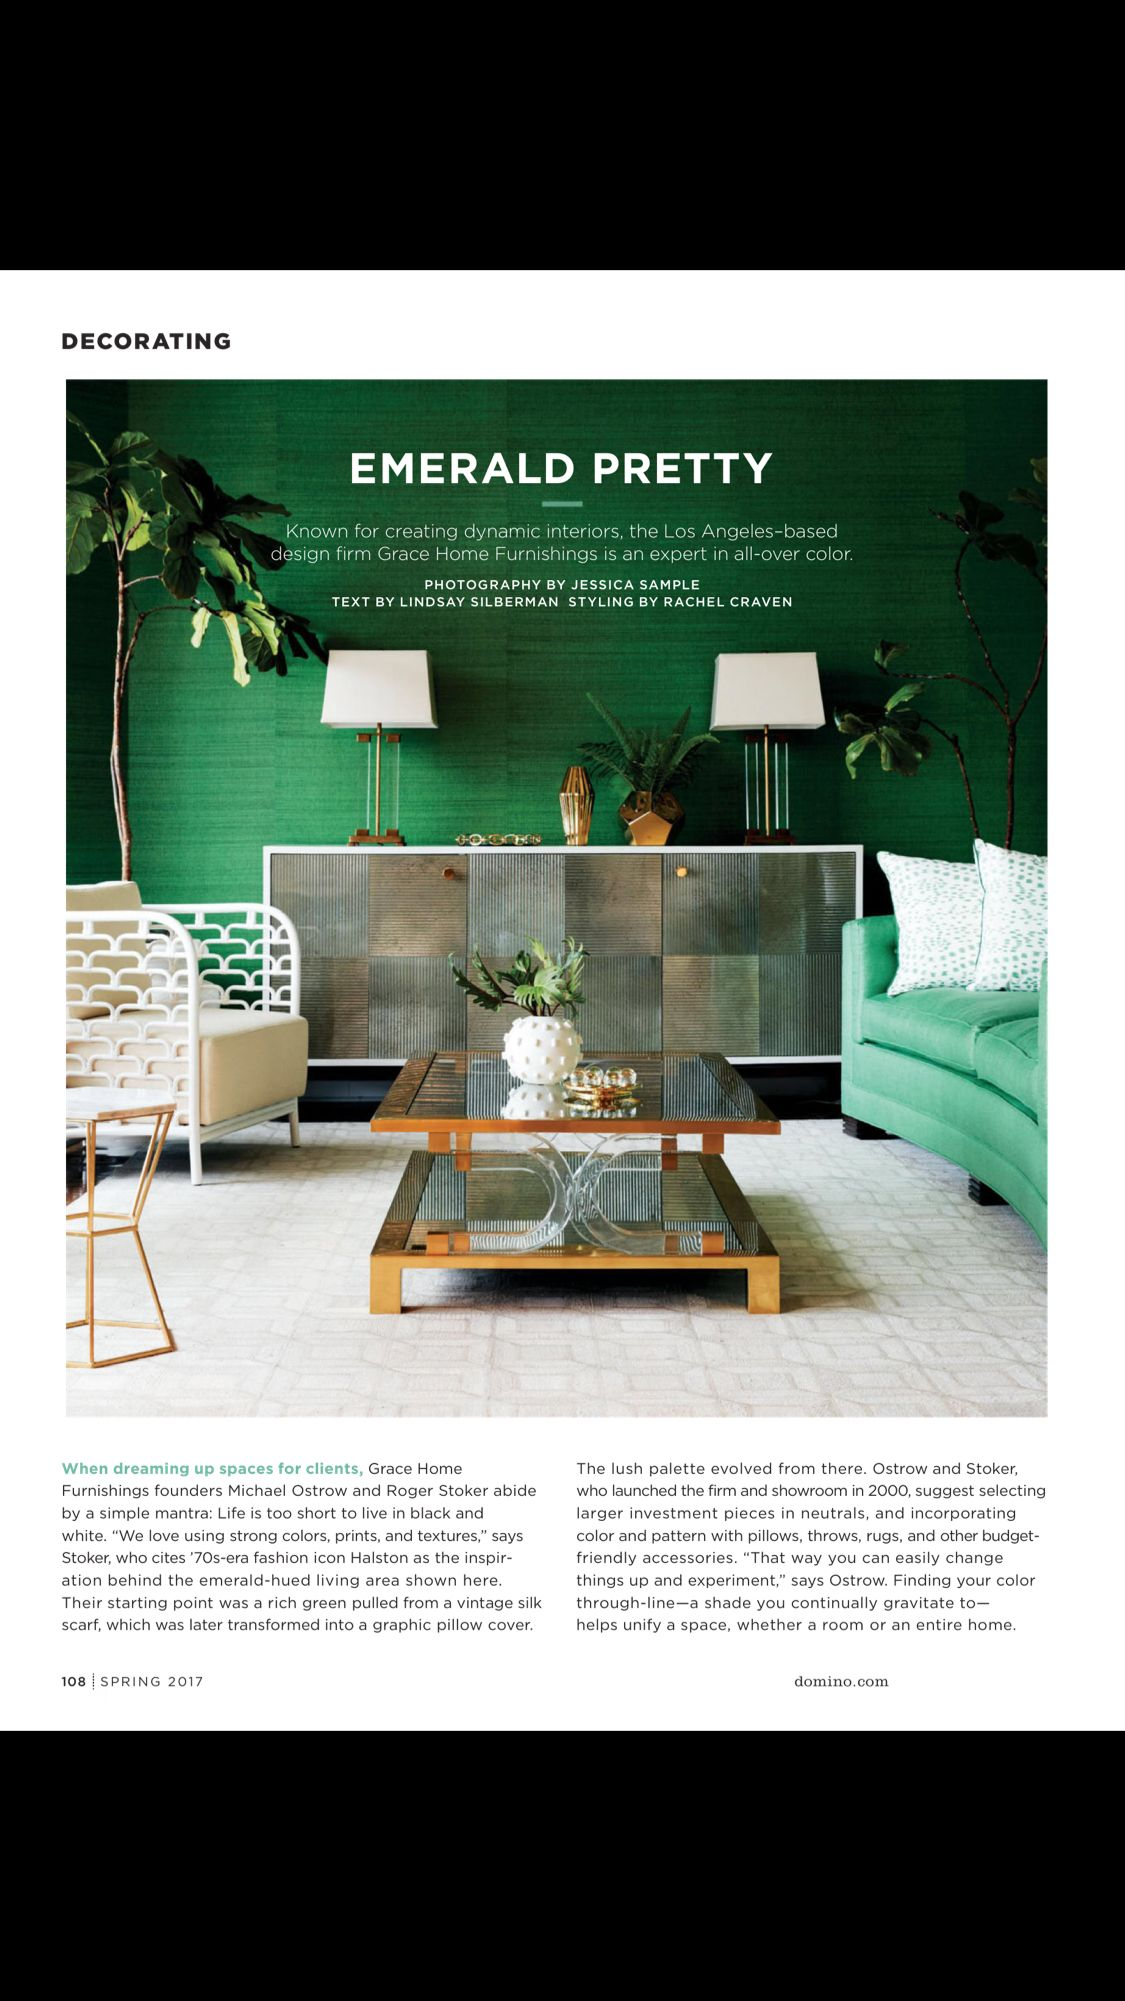 emerald pretty from domino spring 2017 read it on the texture app rh br pinterest com